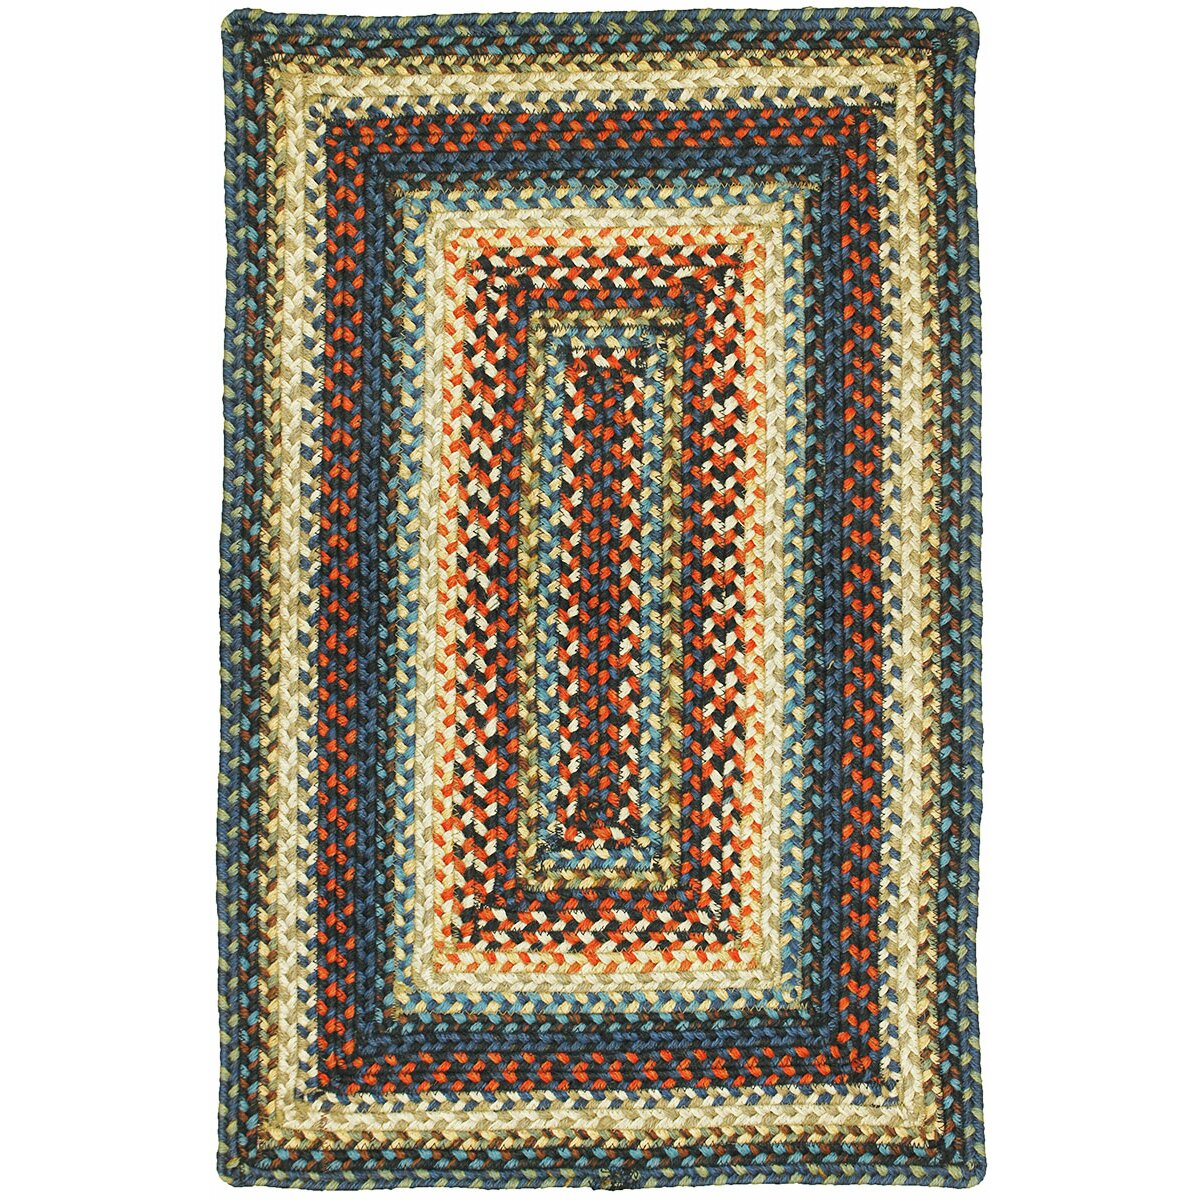 Homespice decor artemis blue area rug reviews wayfair for International home decor rugs